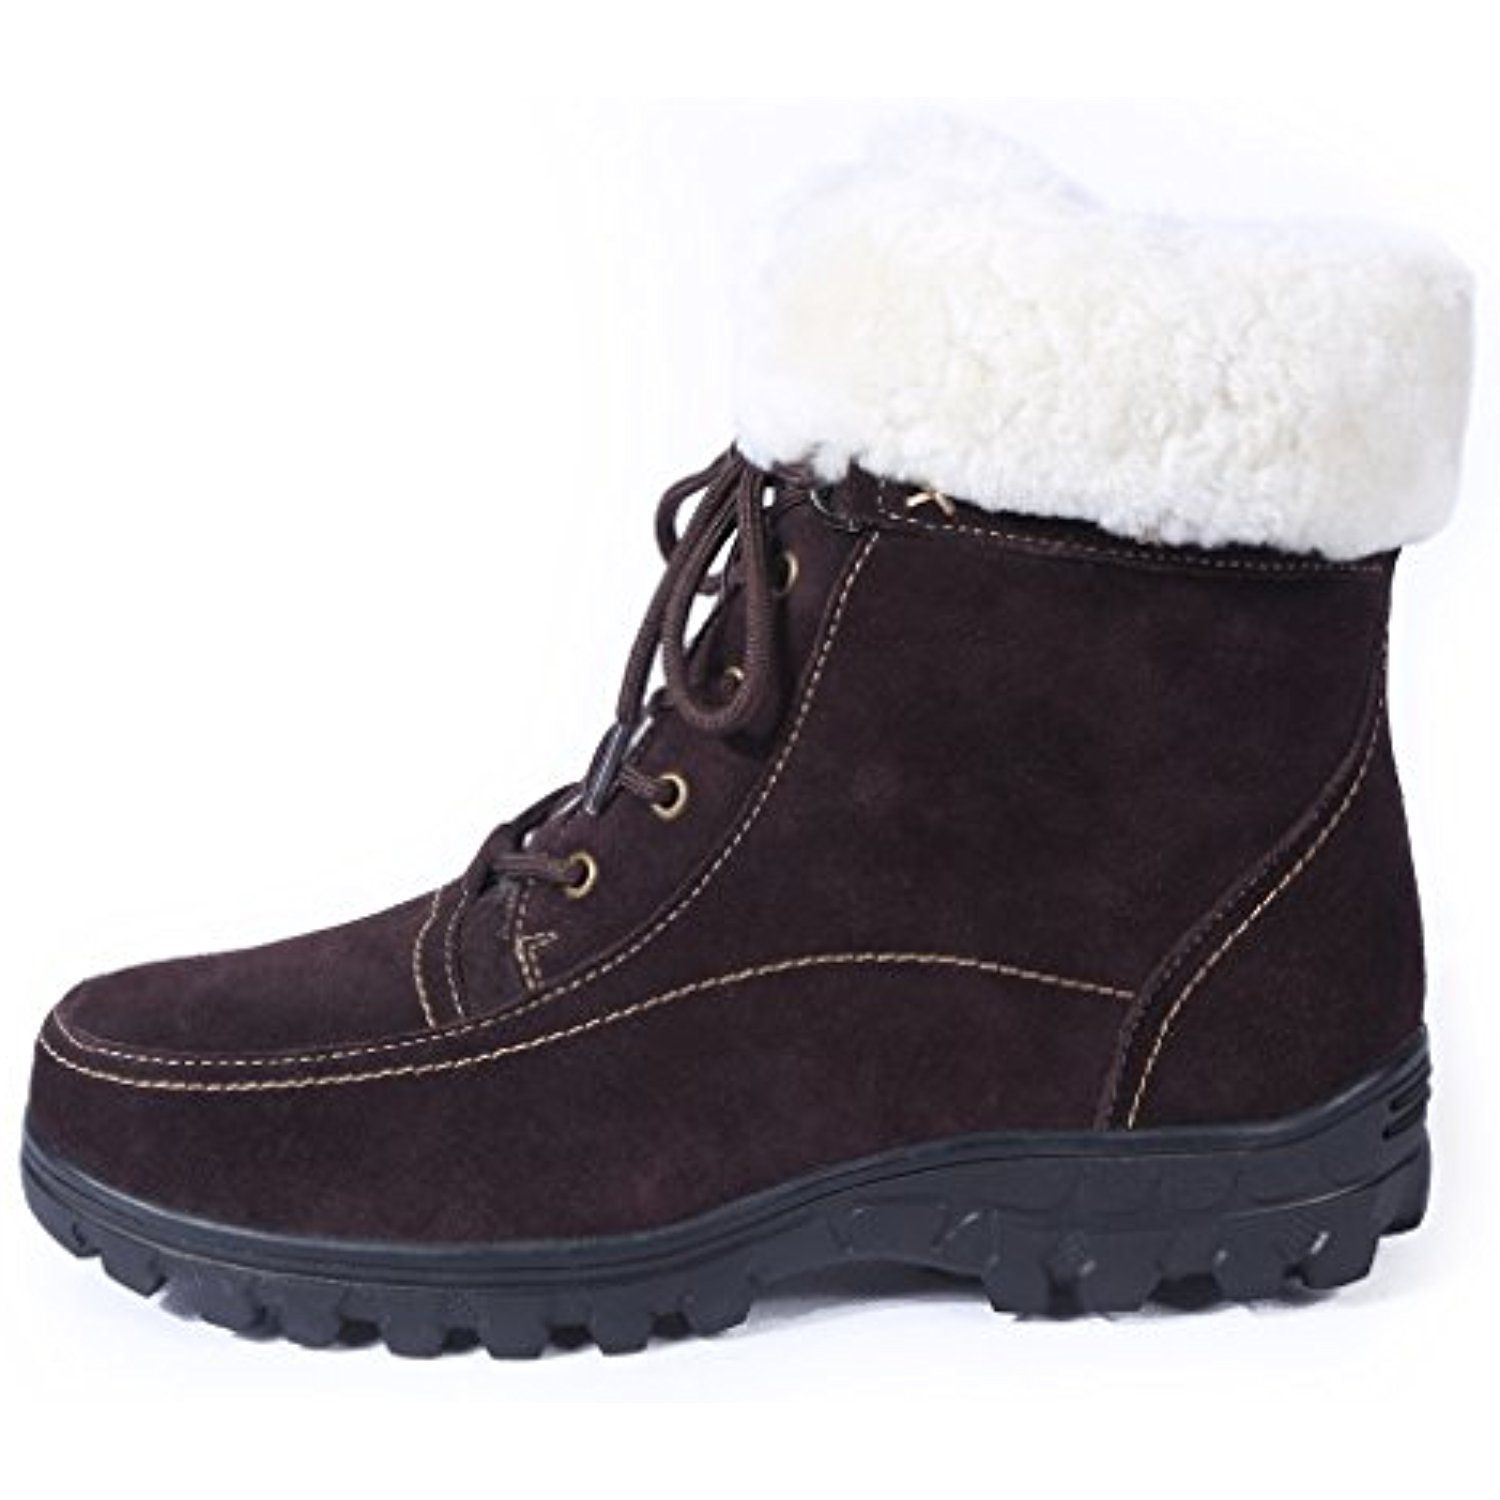 Women's Fur Lined Comfortable Zippered Winter Boots